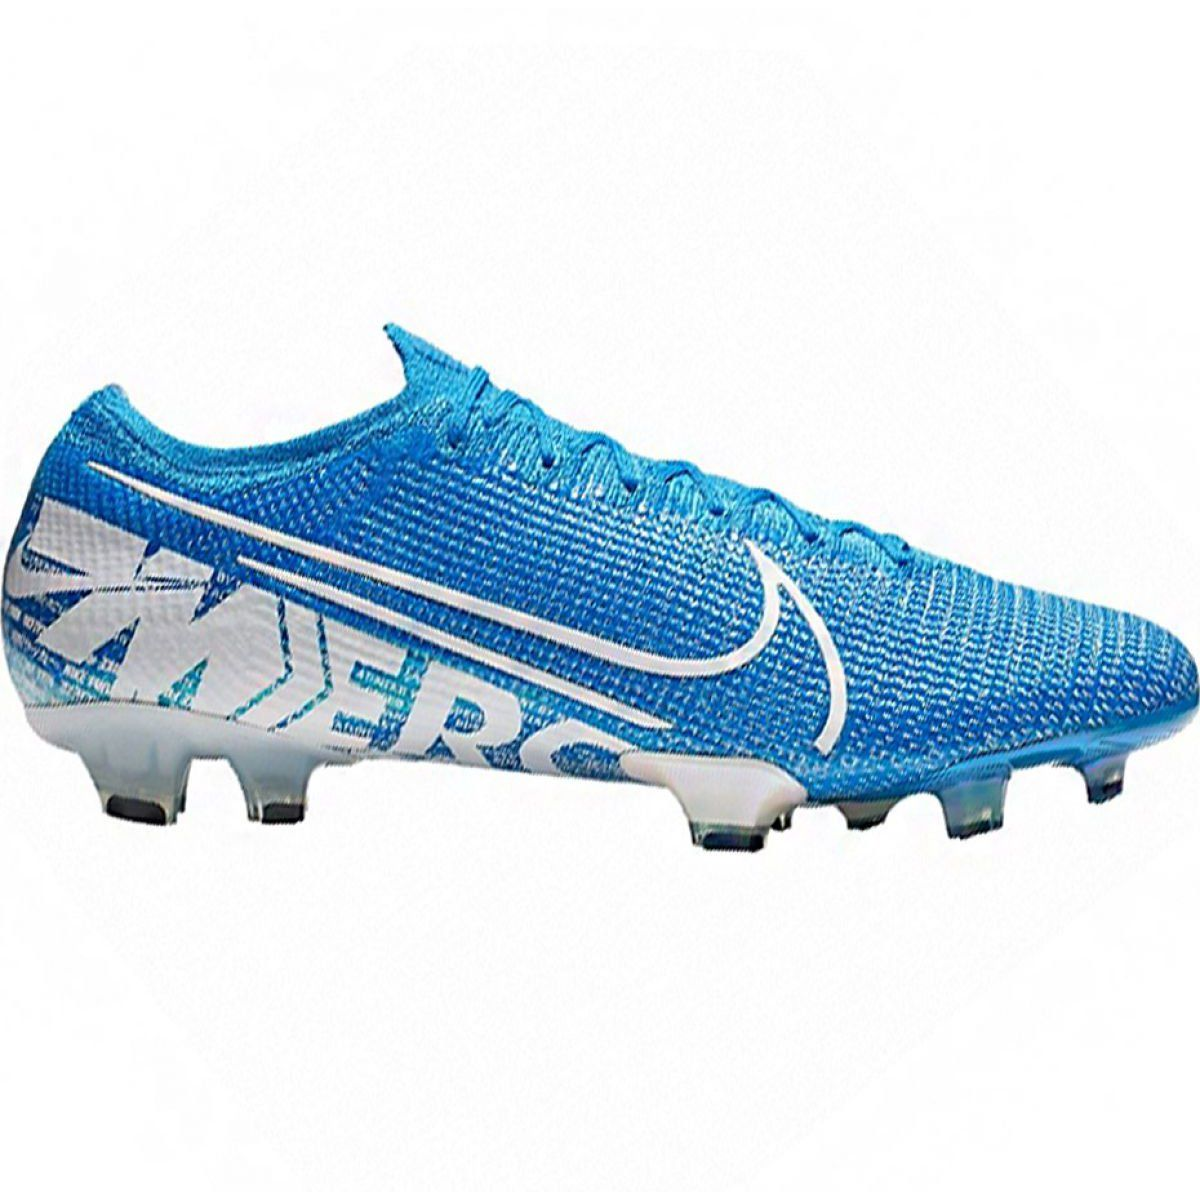 Buty Pilkarskie Nike Mercurial Vapor 13 Elite Fg M Aq4176 414 Niebieskie Wielokolorowe Football Shoes Football Boots Sport Shoes Design